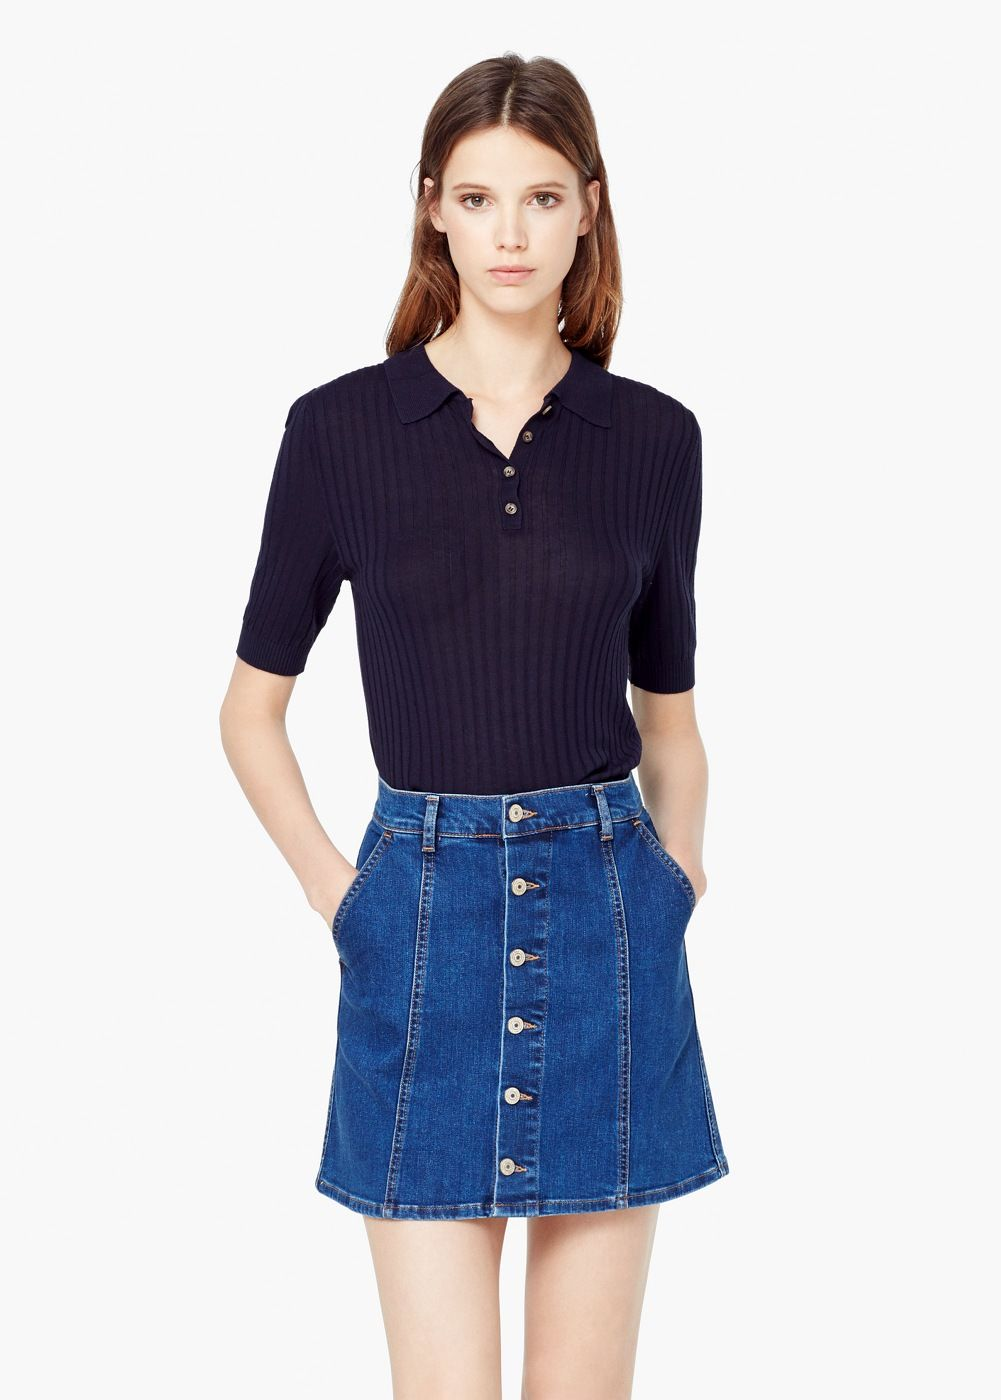 precio de fábrica 33dfb 78515 Buttoned denim skirt - Women | Denim | Faldas denim, Faldas ...